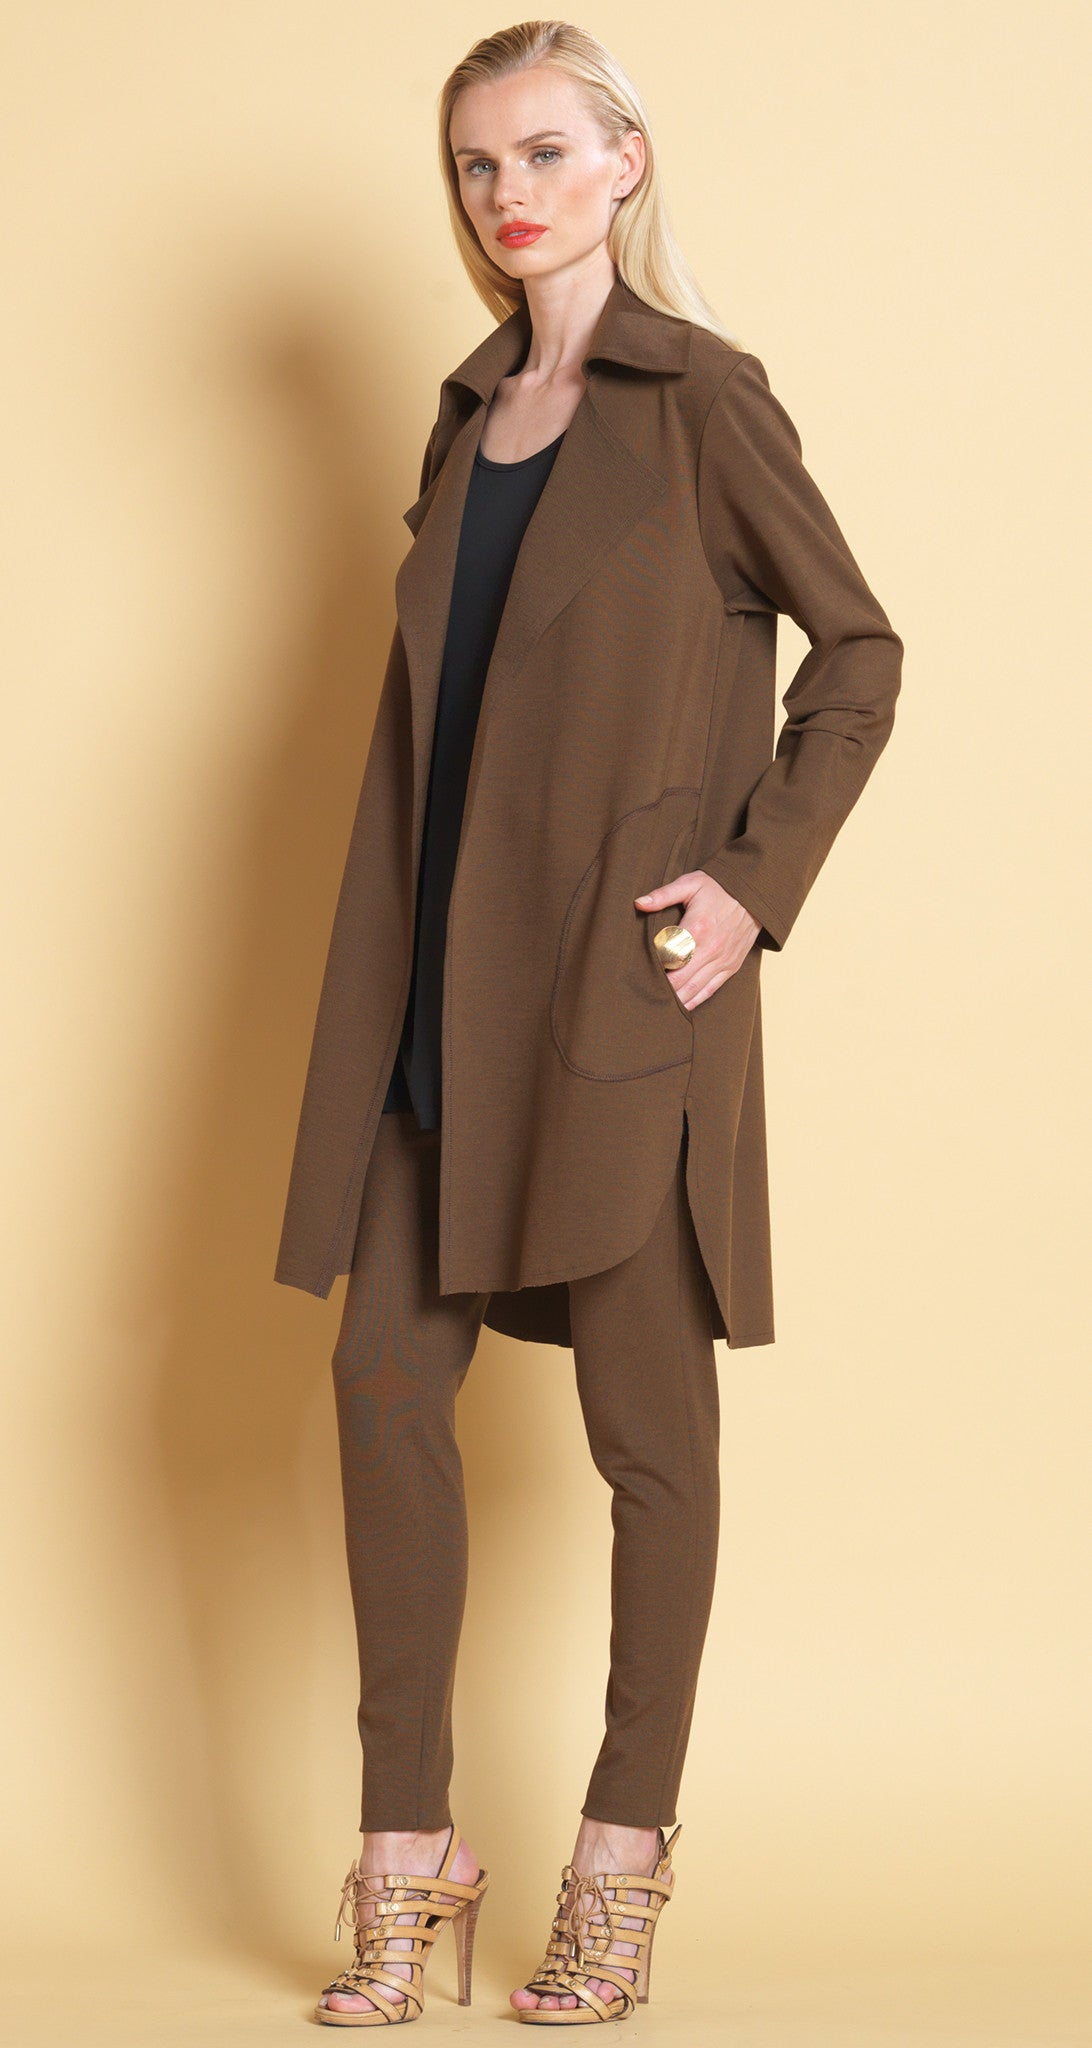 Ponte Collared Cardigan - Brown